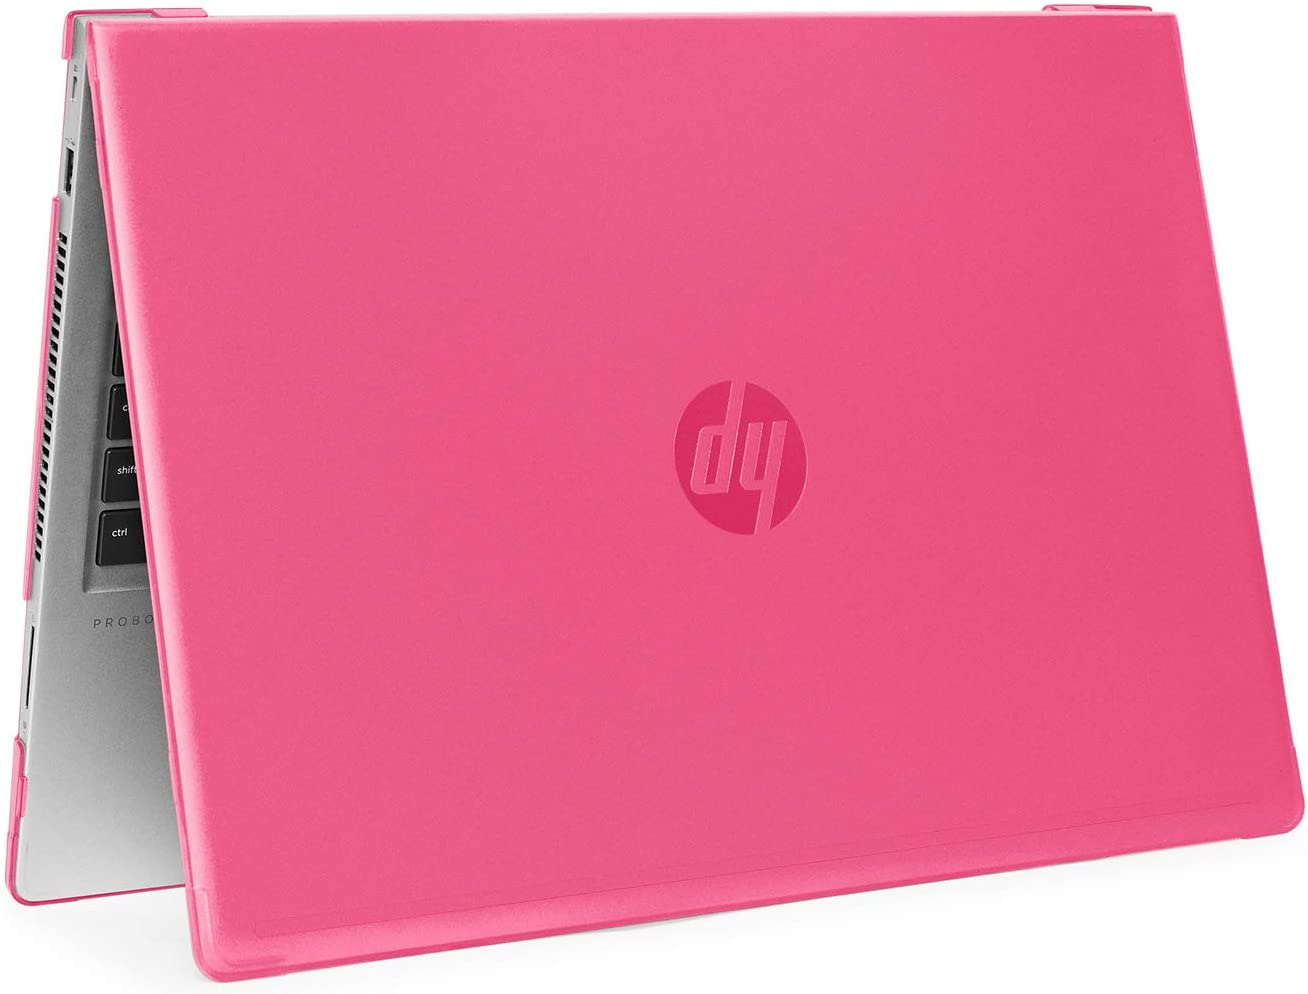 "mCover Hard Shell Case for 2019 15.6"" HP ProBook 450/455 G6 Series (NOT Compatible with Older HP ProBook 450/455 G1 / G2 / G3 / G4 / G5 Series) Notebook PC (PB450-G6 Pink)"